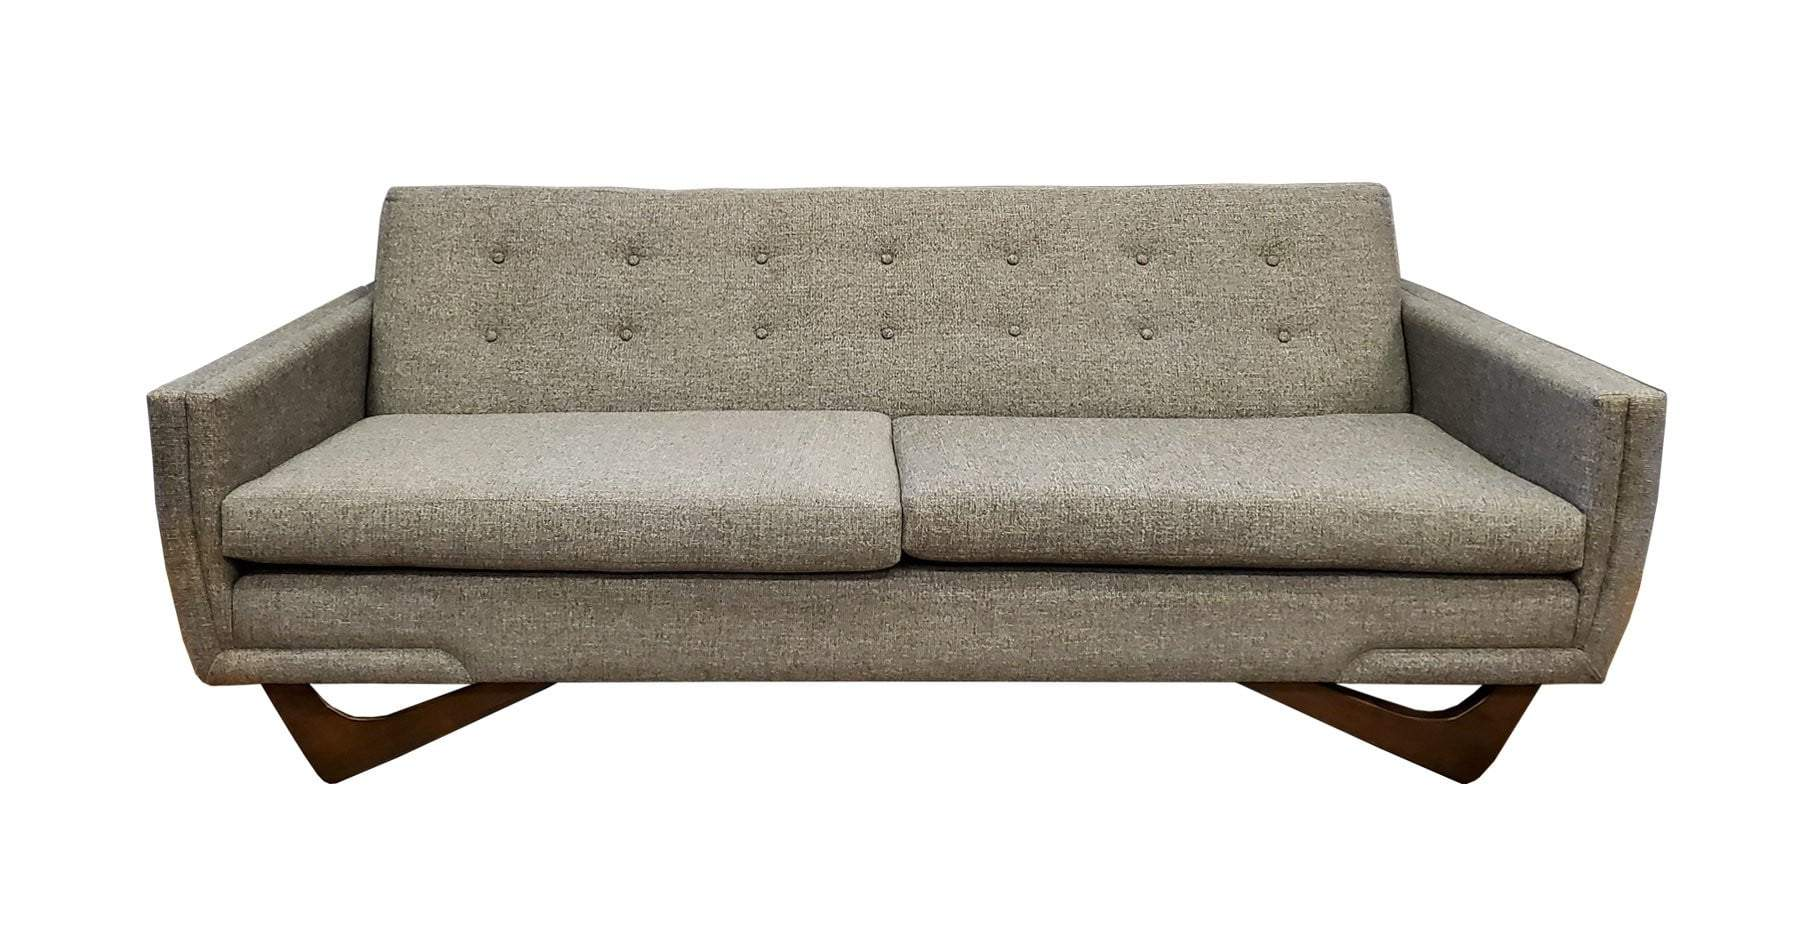 Bellevue Sofa - sofacreations